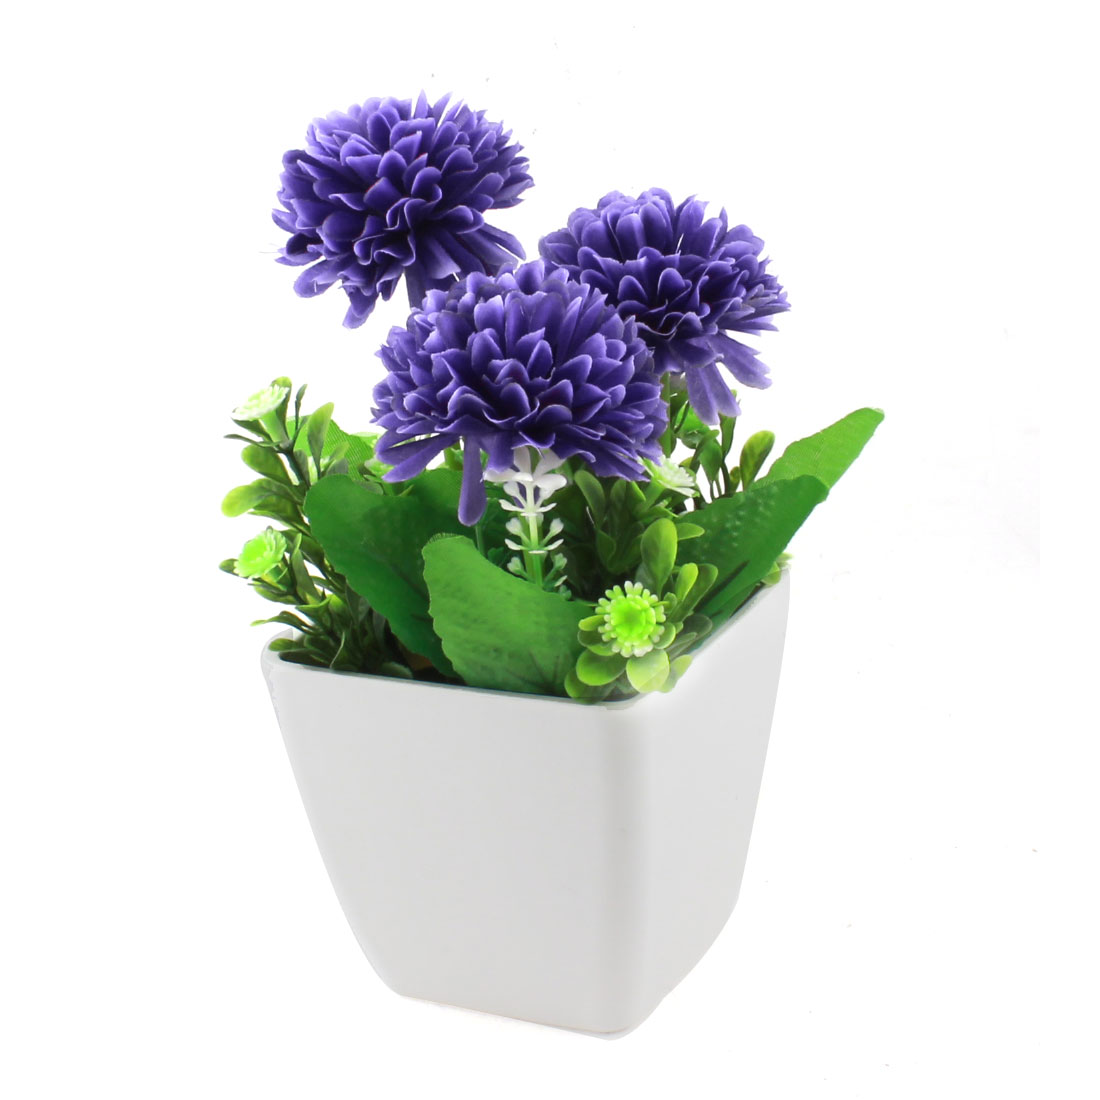 Home Table Desk Decor Decoration Purple Plastic Fabric Flowers Artificial Flowerpot Potting 19cm Height